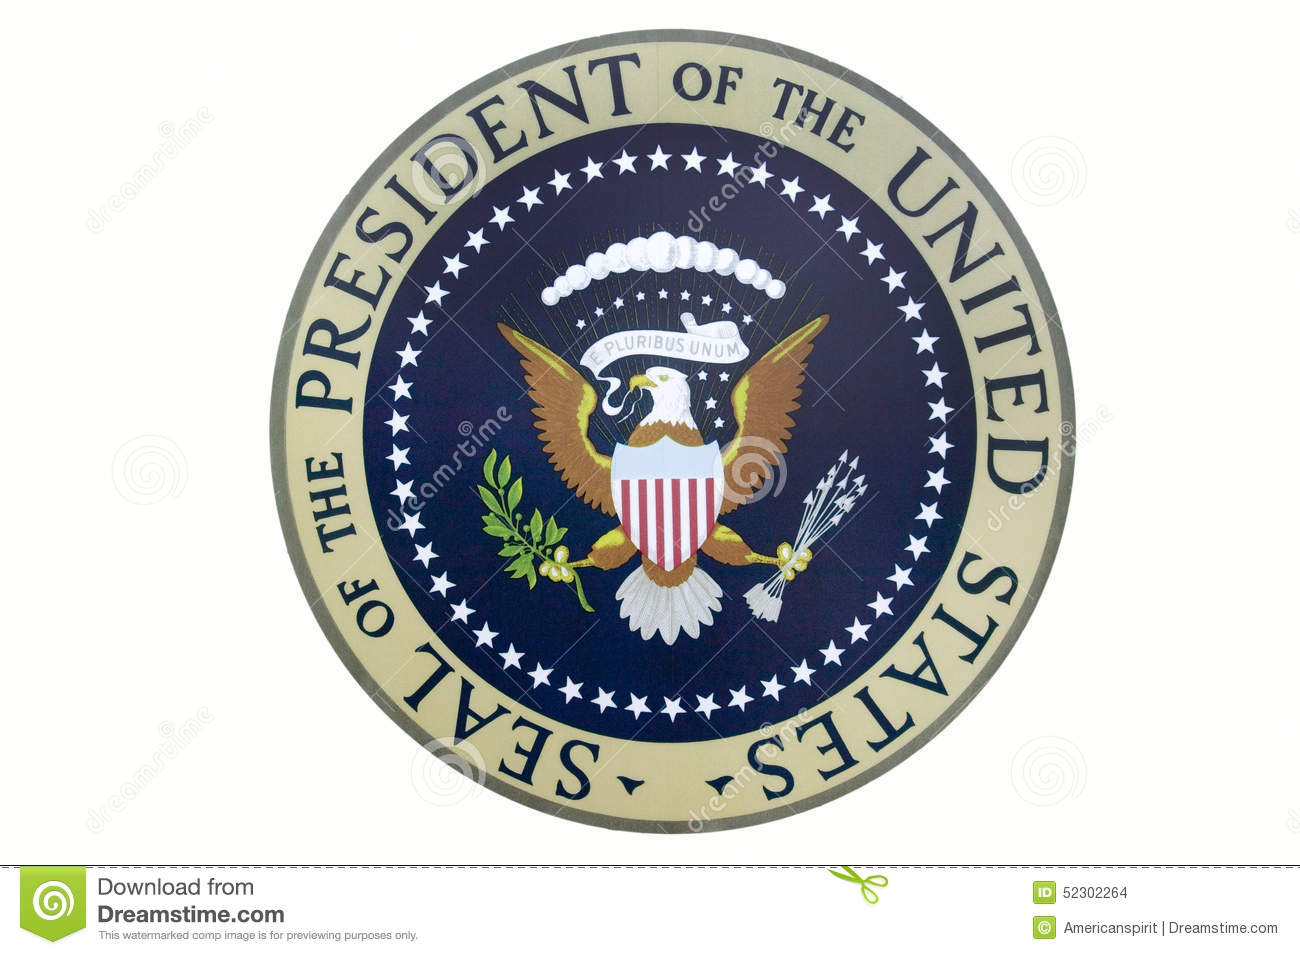 Clipart presidents united states jpg black and white download Seal Of The President Of The United States On Display At The ... jpg black and white download